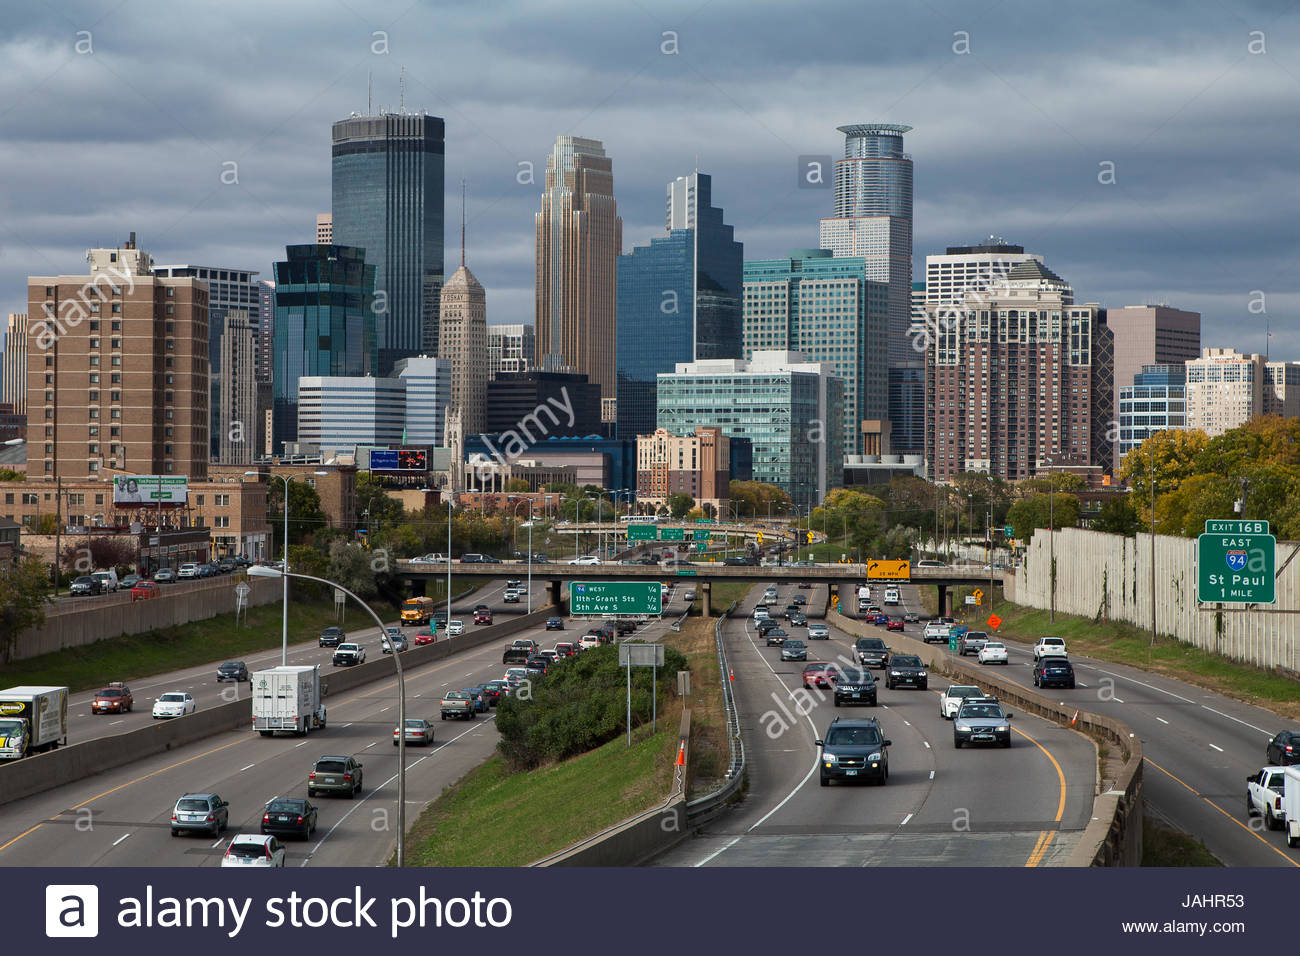 The skyline of Minneapolis, looking north from the junction of interstates 35W and 94, in 2014. - Stock Image